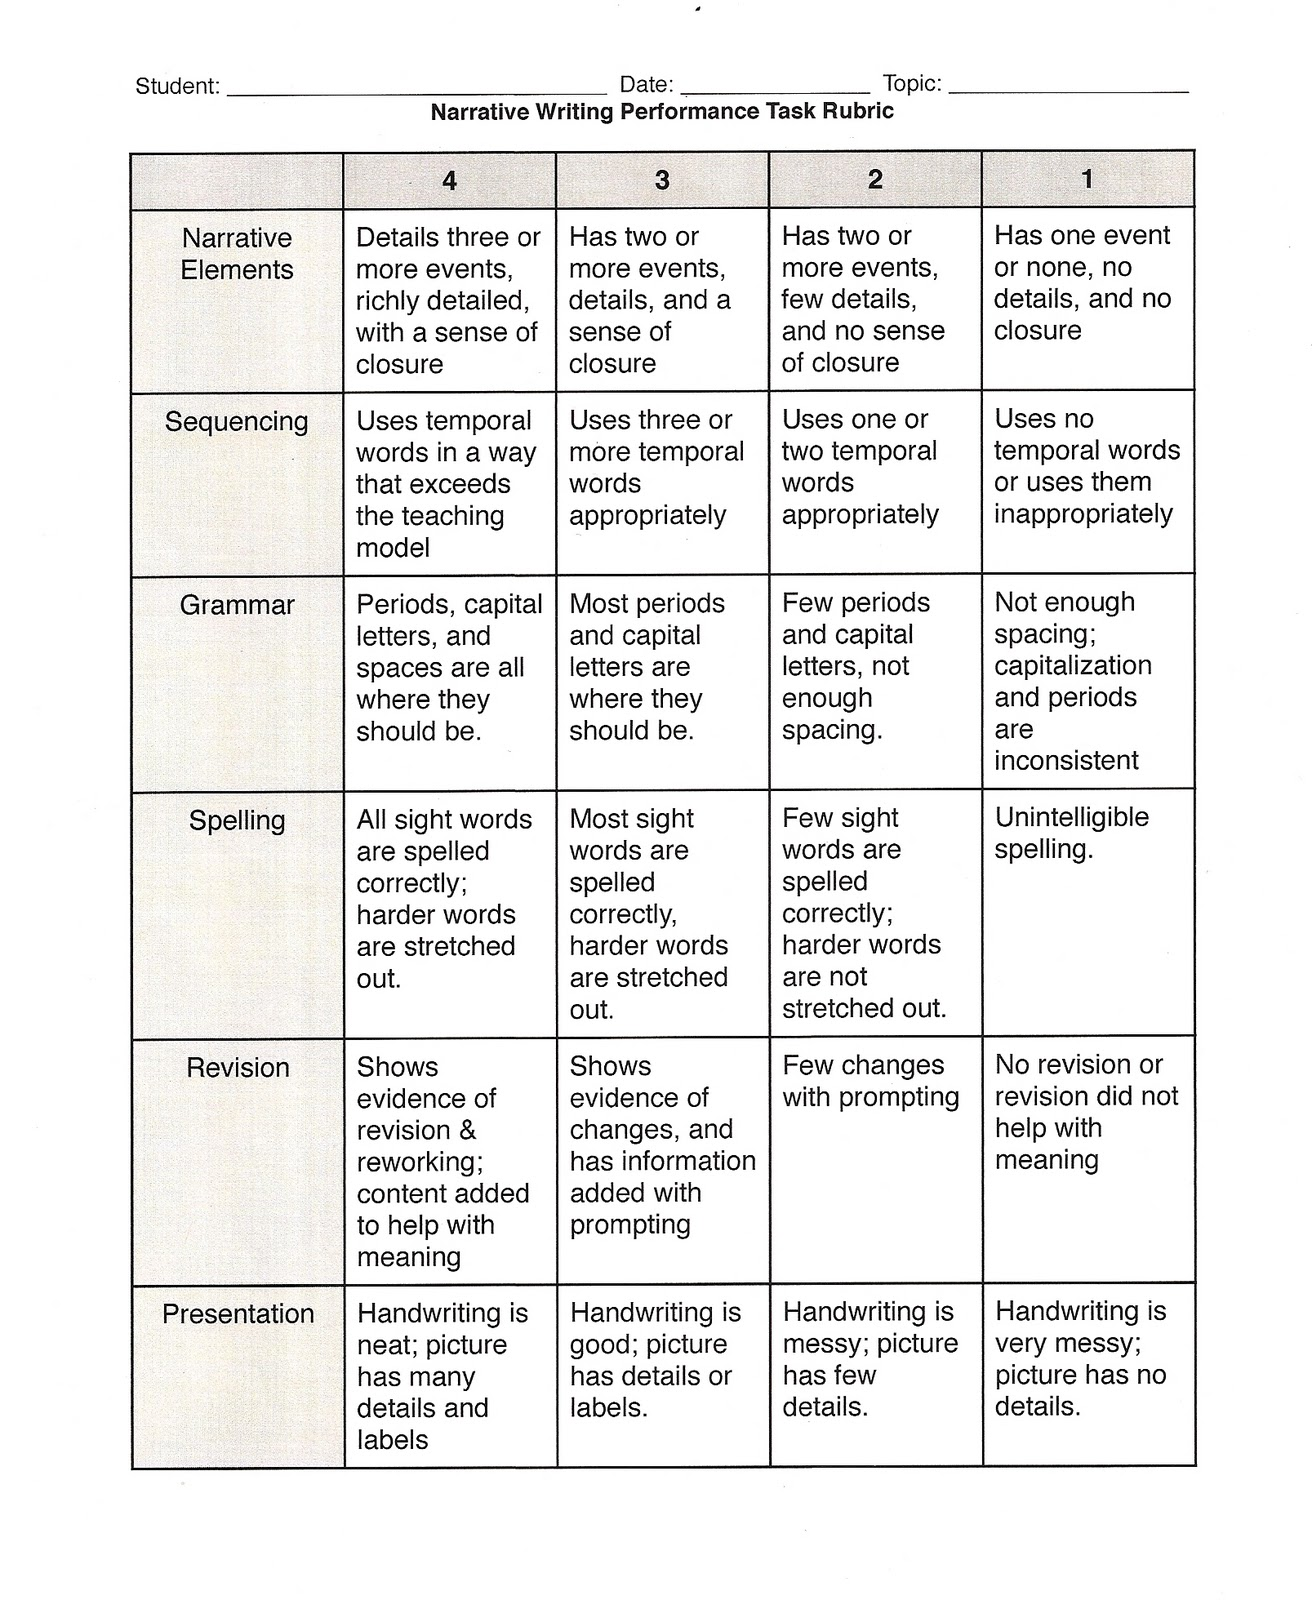 comparative essay rubrics Provided to students before and during learning, rubrics also assist students to  more successfully  table 1: holistic rubric for assessing student essay  rating.